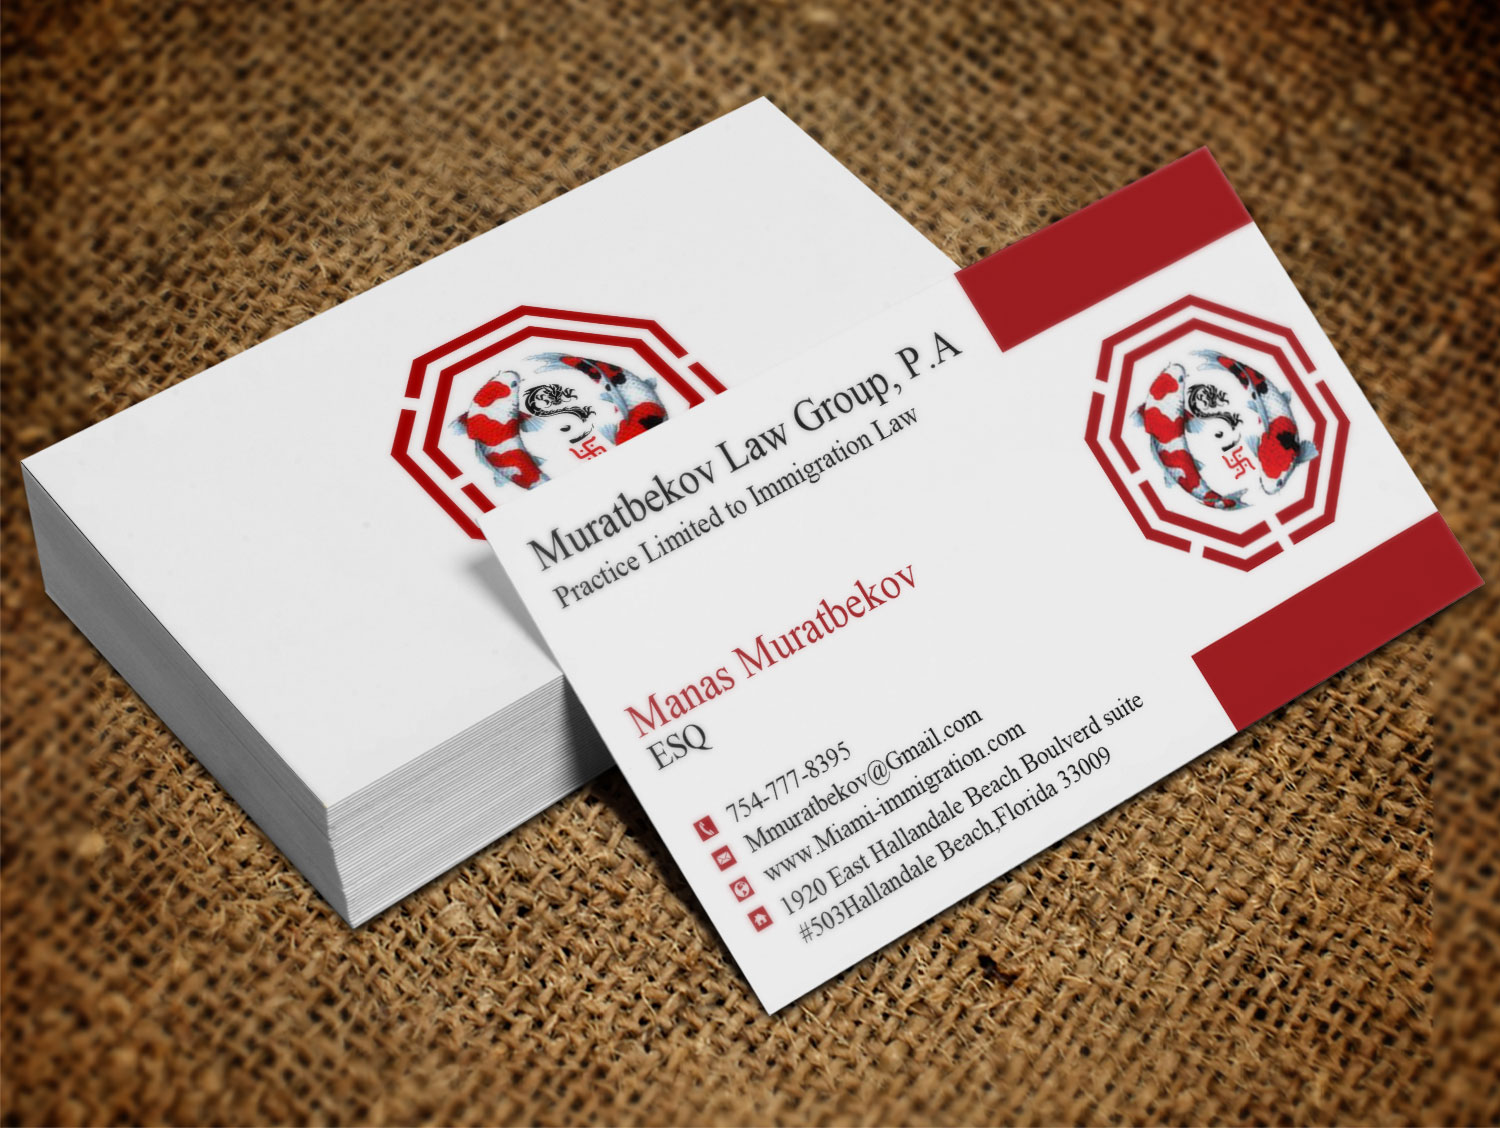 Business card layout best practices images card design and card best feng shui business cards contemporary business card ideas feng shui business cards templates best business colourmoves